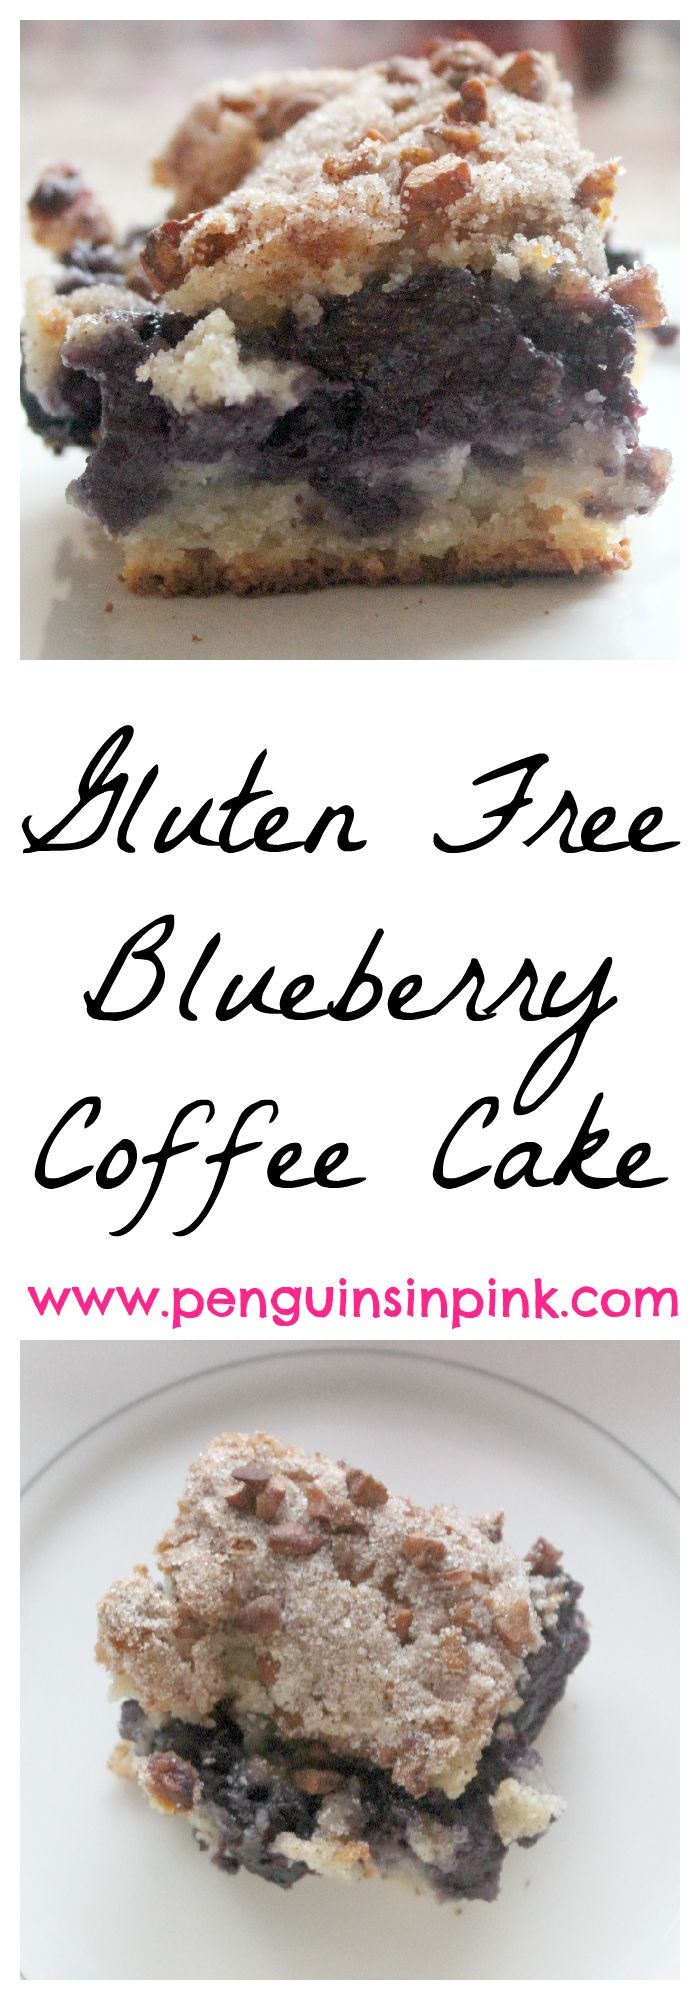 Gluten Free Blueberry Coffee Cake - Sweet blueberries, cinnamon, and pecans layered between a crumbly crust. Blueberry coofee cake is perfect for brunches, afternoon teas, or wedding and baby showers. #glutenfree #blueberries #recipe